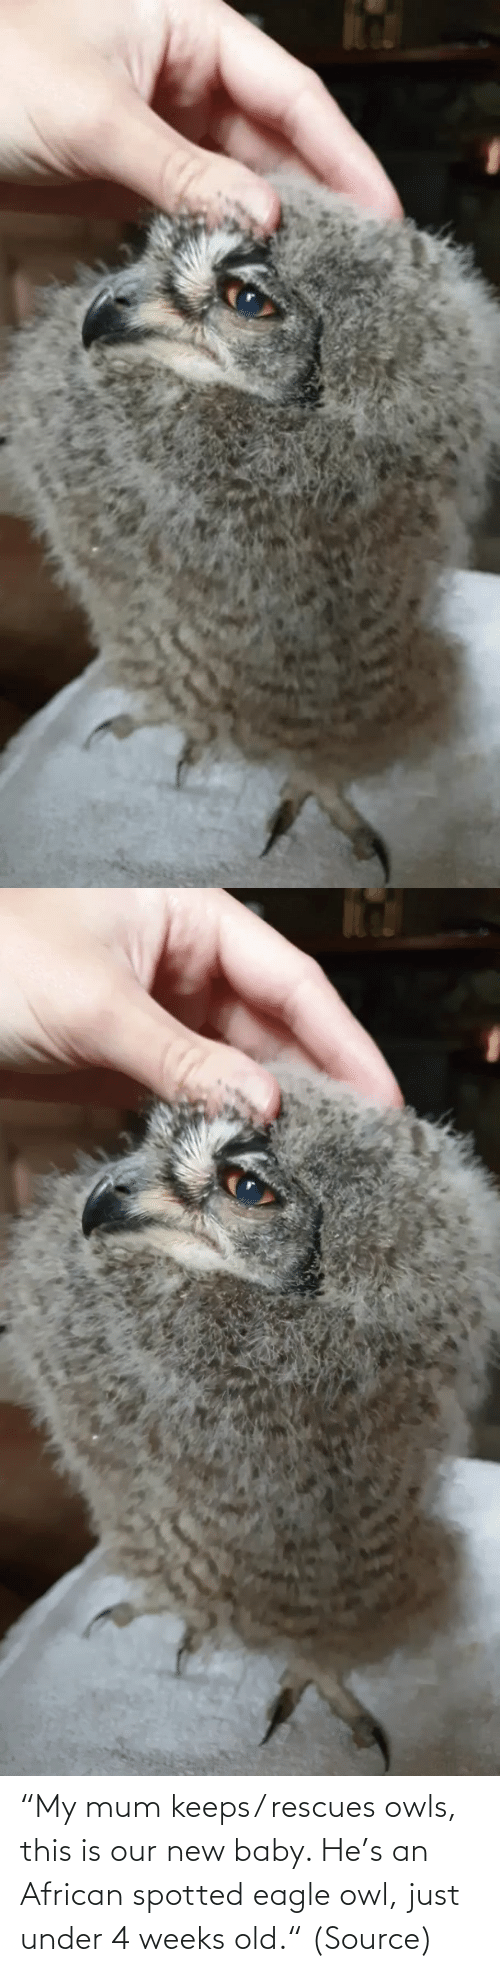 "reddit: ""My mum keeps/ rescues owls, this is our new baby. He's an African spotted eagle owl, just under 4 weeks old."" (Source)"